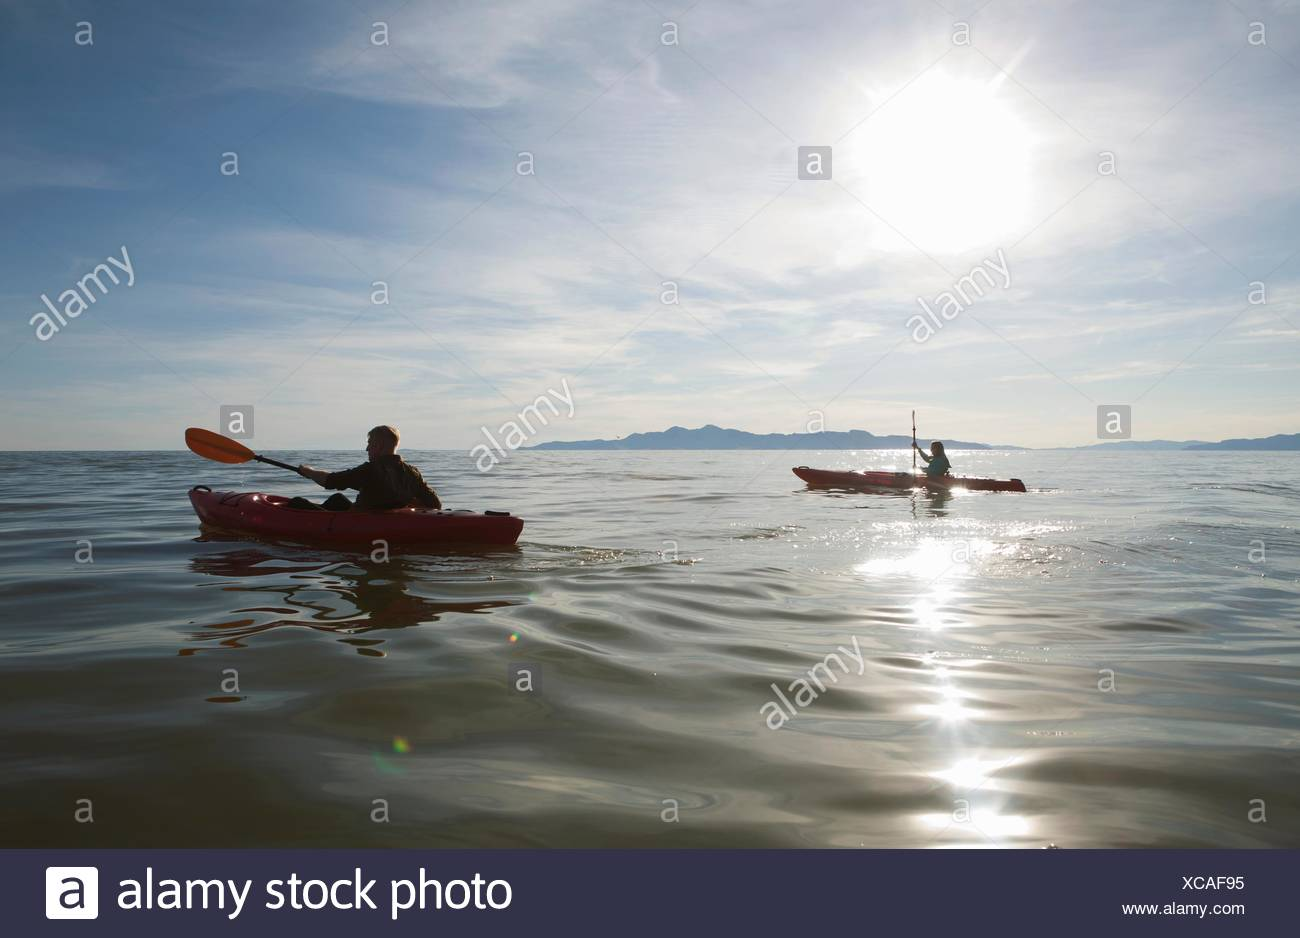 Couple kayaking, sunlight reflecting on water, Great Salt Lake, Utah, USA - Stock Image